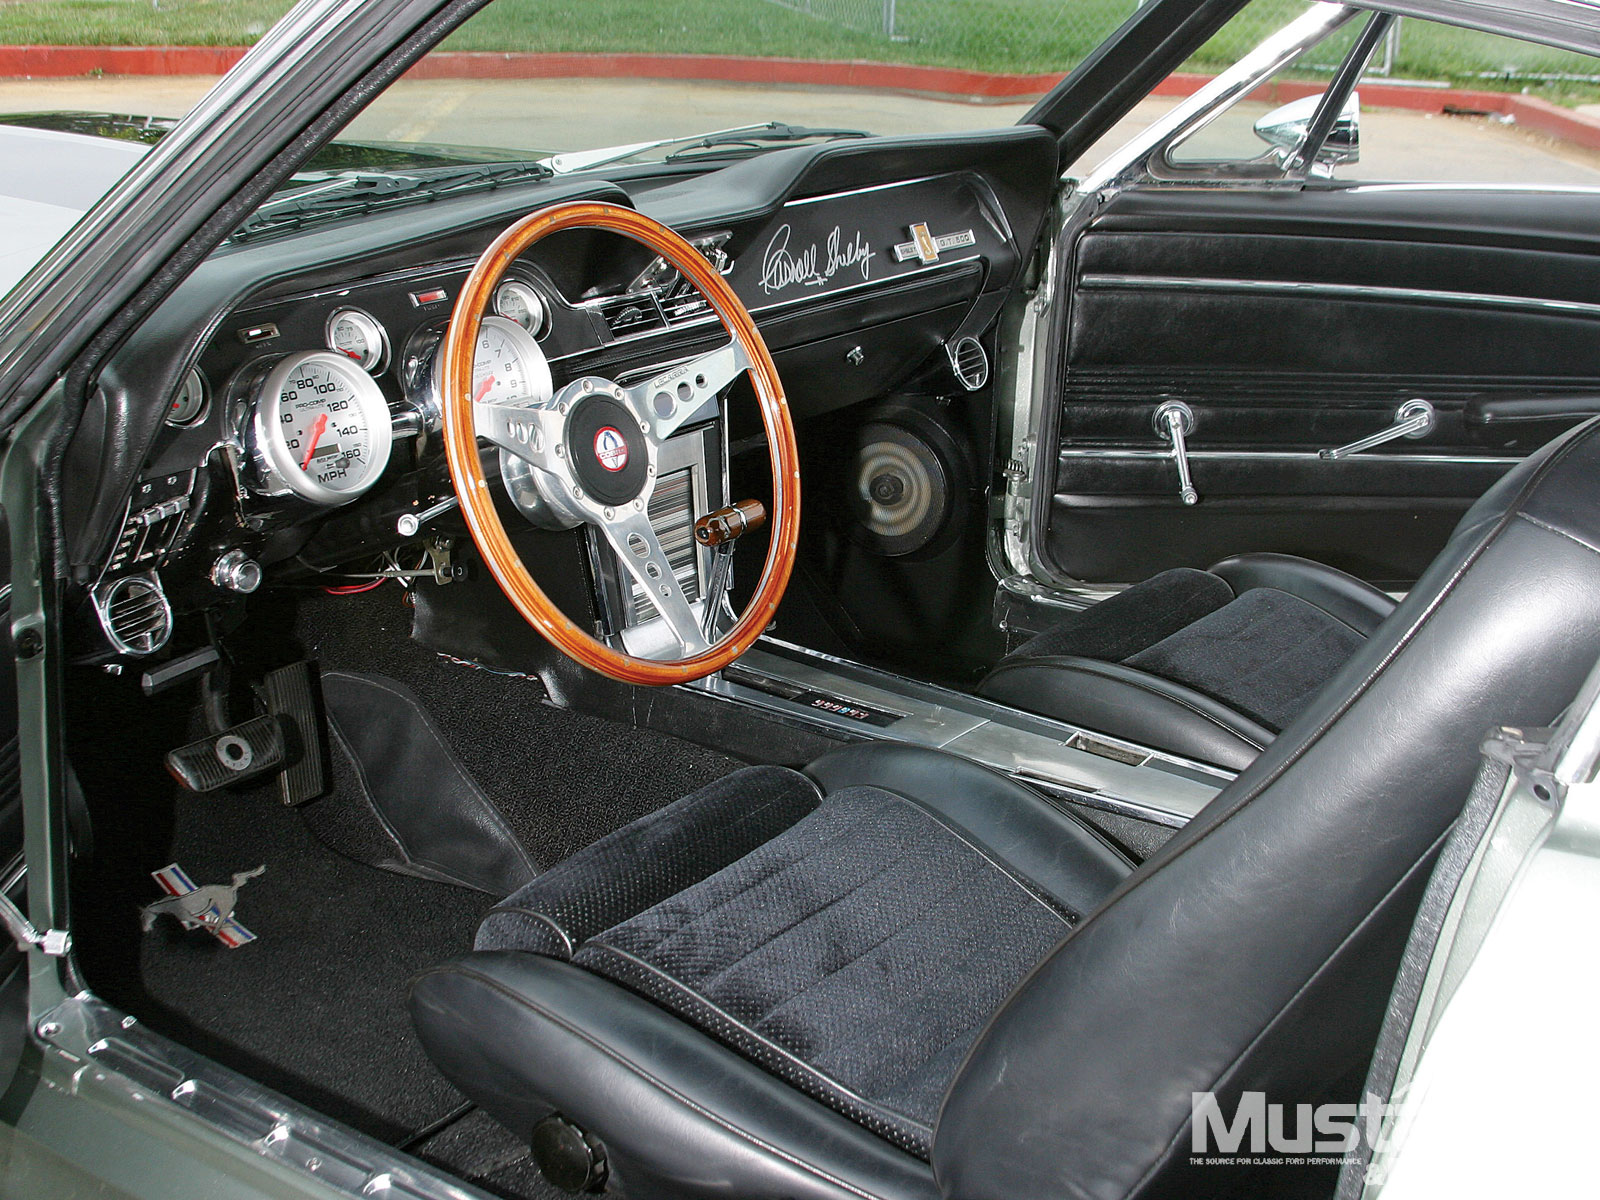 1967 Mustang Eleanor Replica Interior Steering Wheel